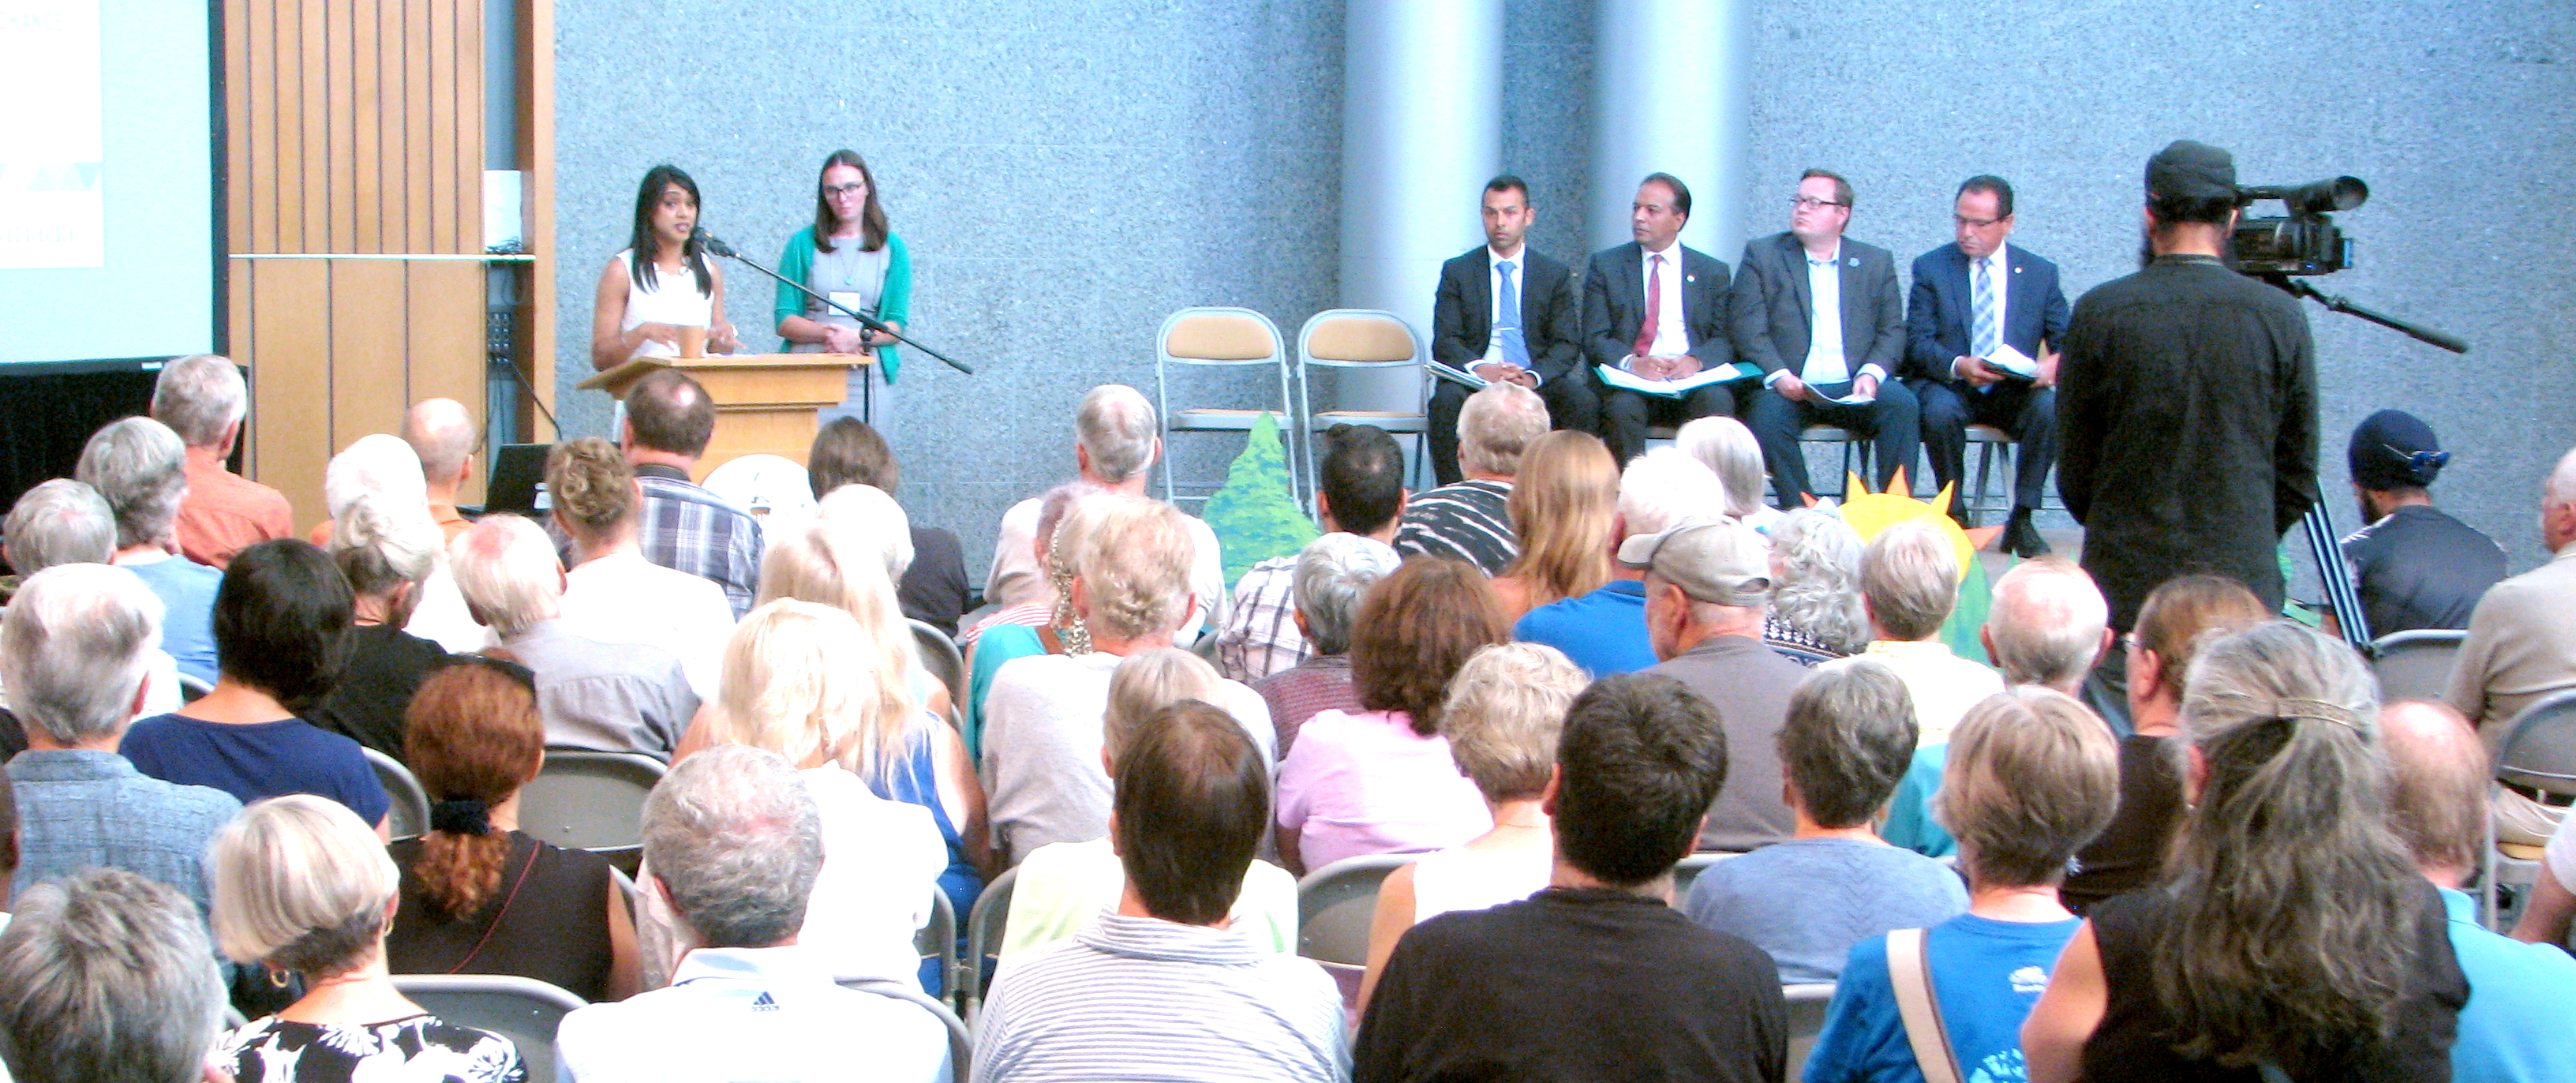 All 5 Waterloo Region MPs attended the Climate Change Town Hall